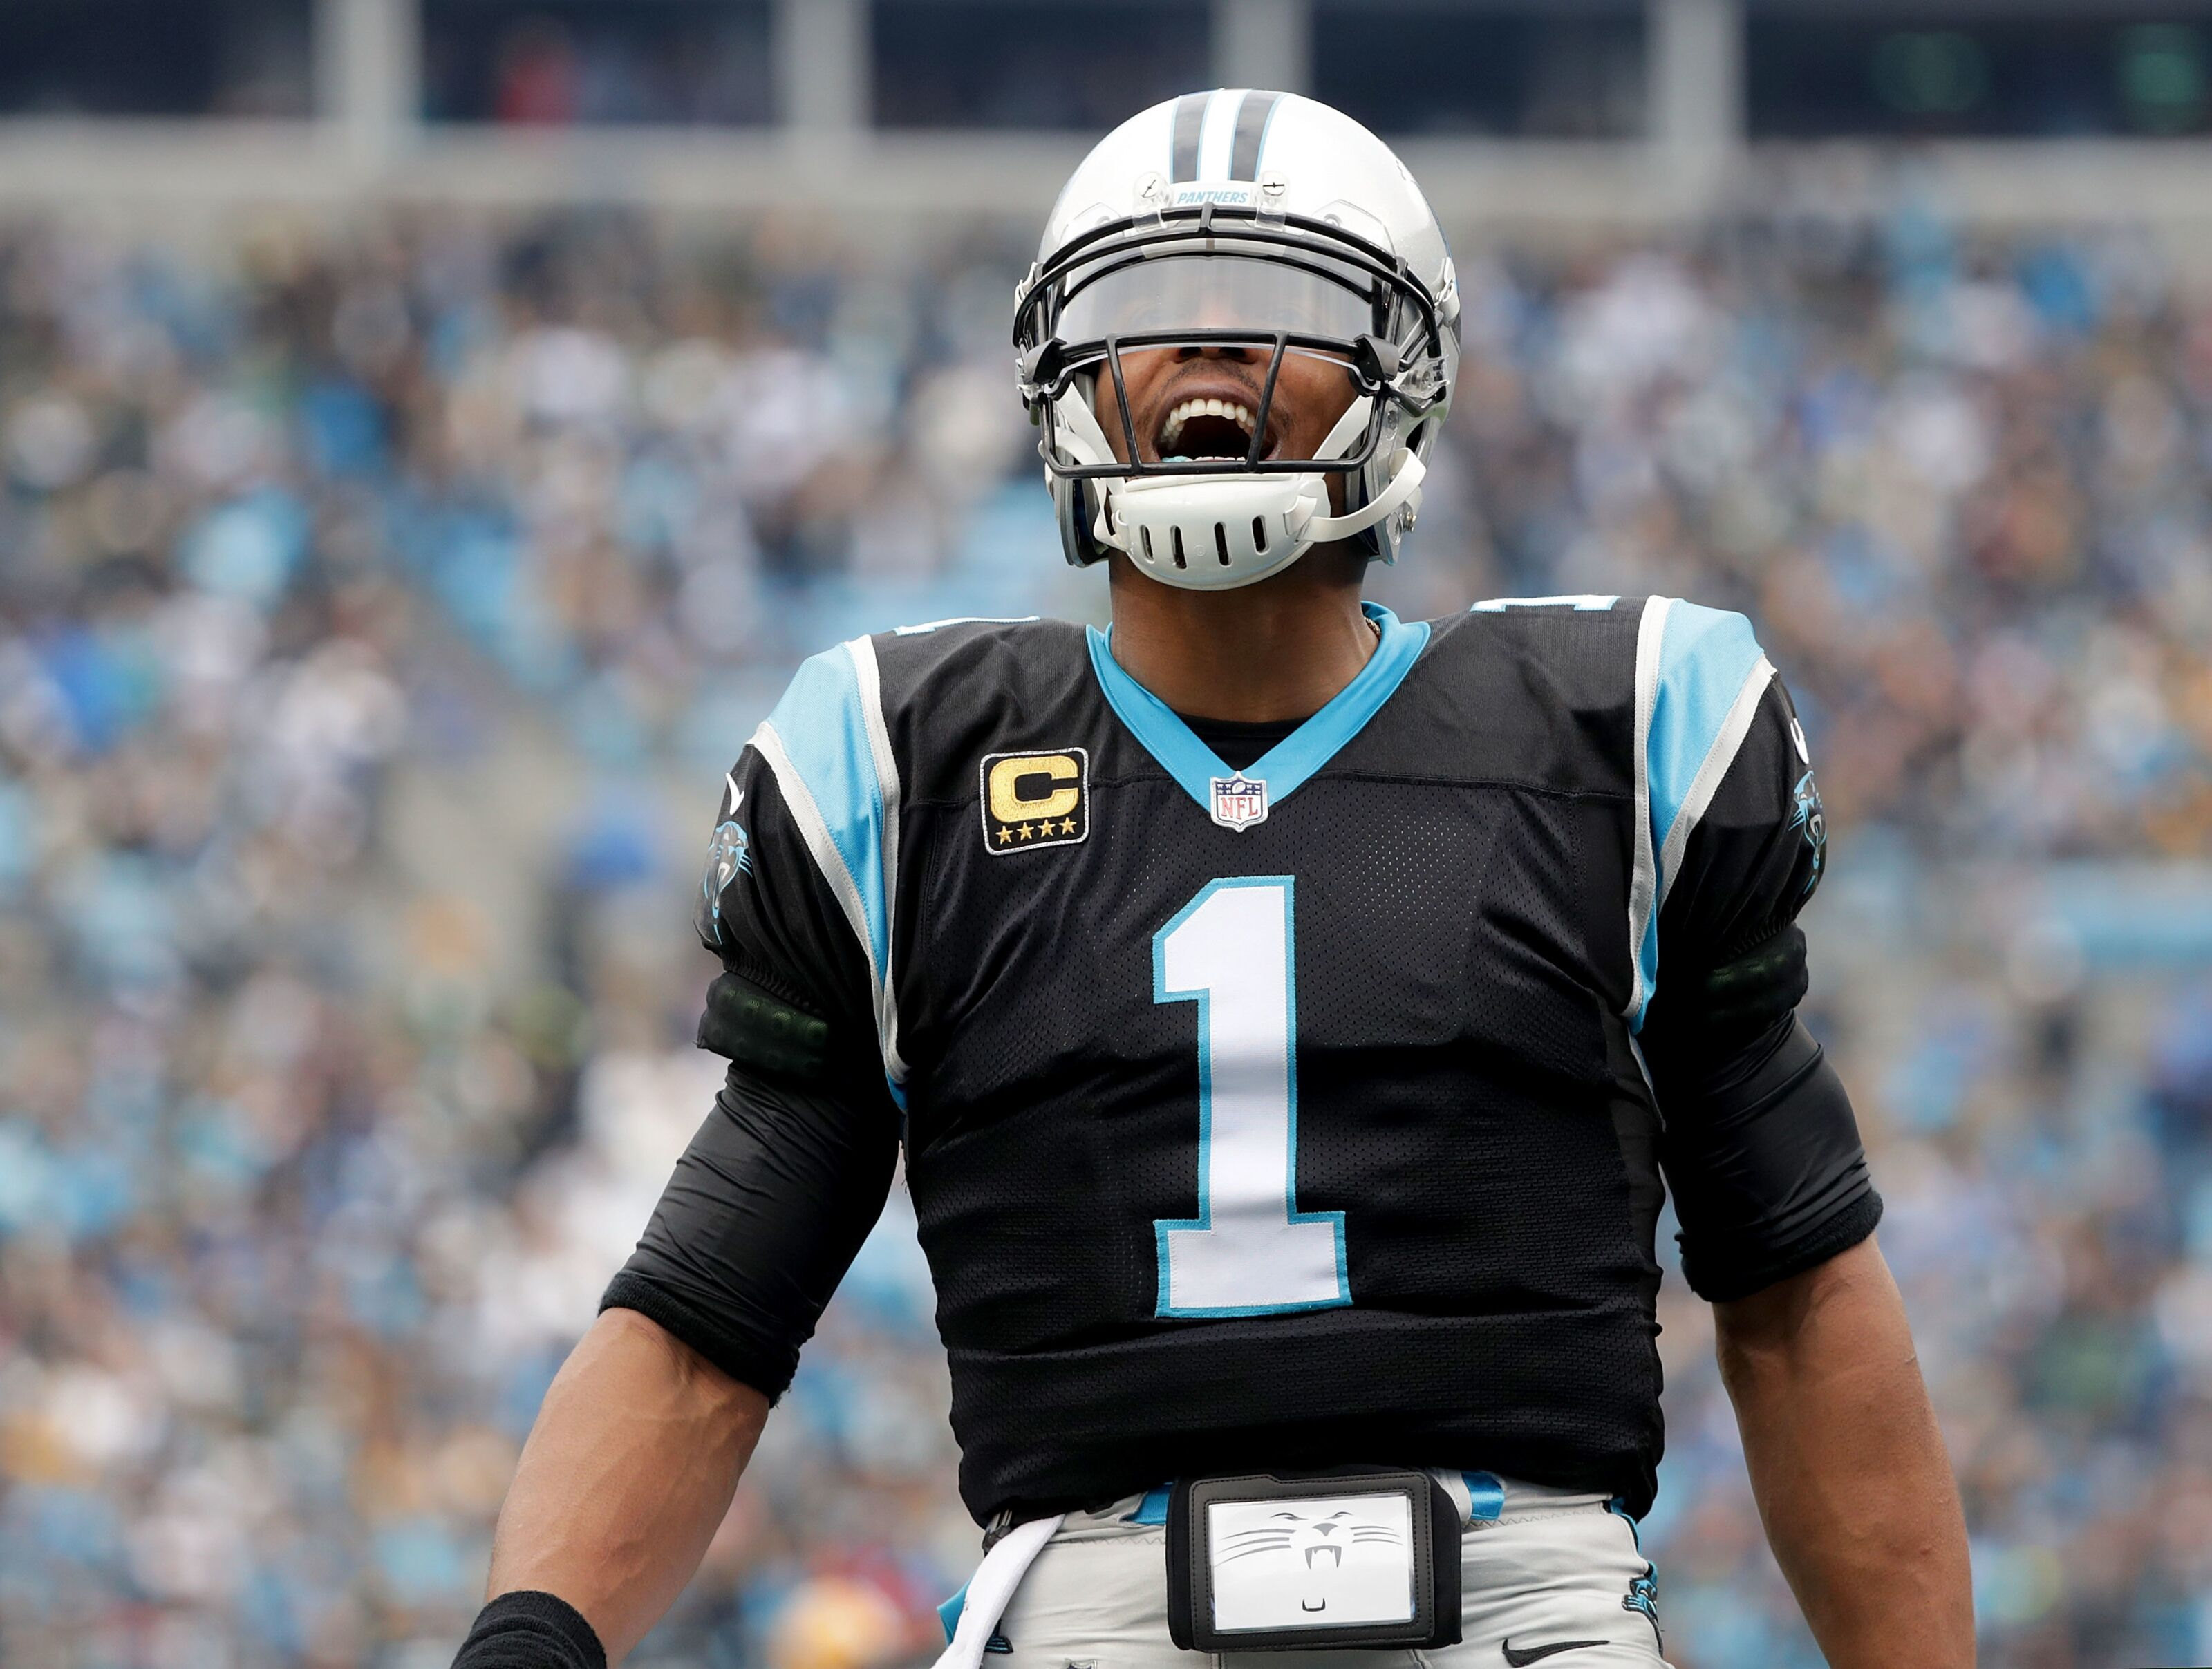 Green Bay Packers 2019 opponent preview: Carolina Panthers